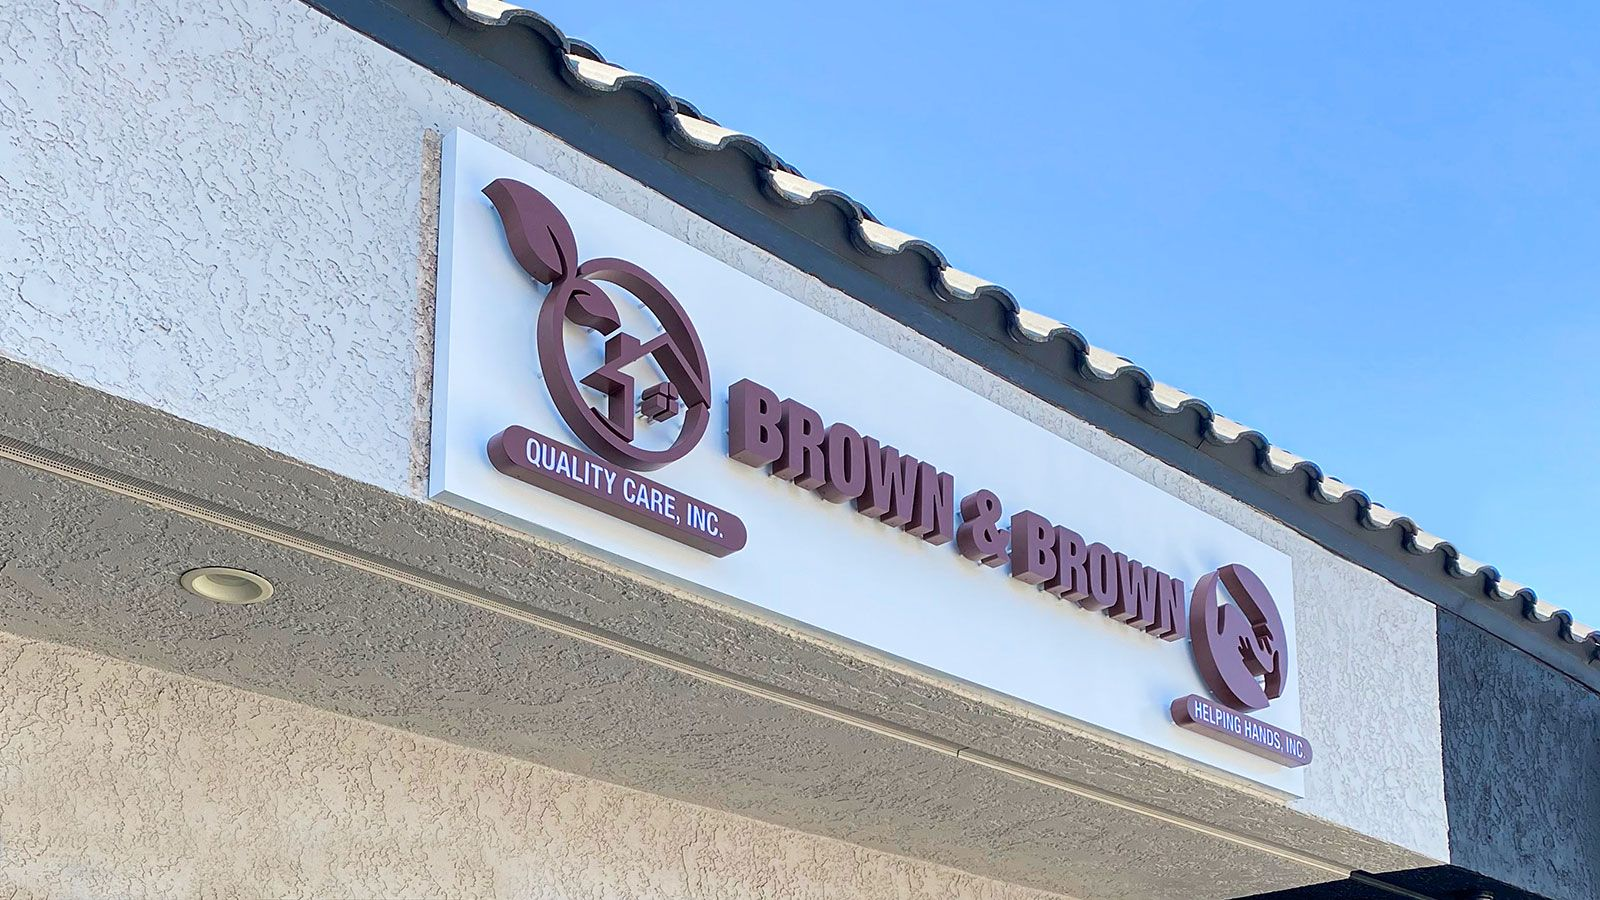 Brown & Brown 3d sign displaying the name and logo of the company made of aluminum and acrylic for storefront branding